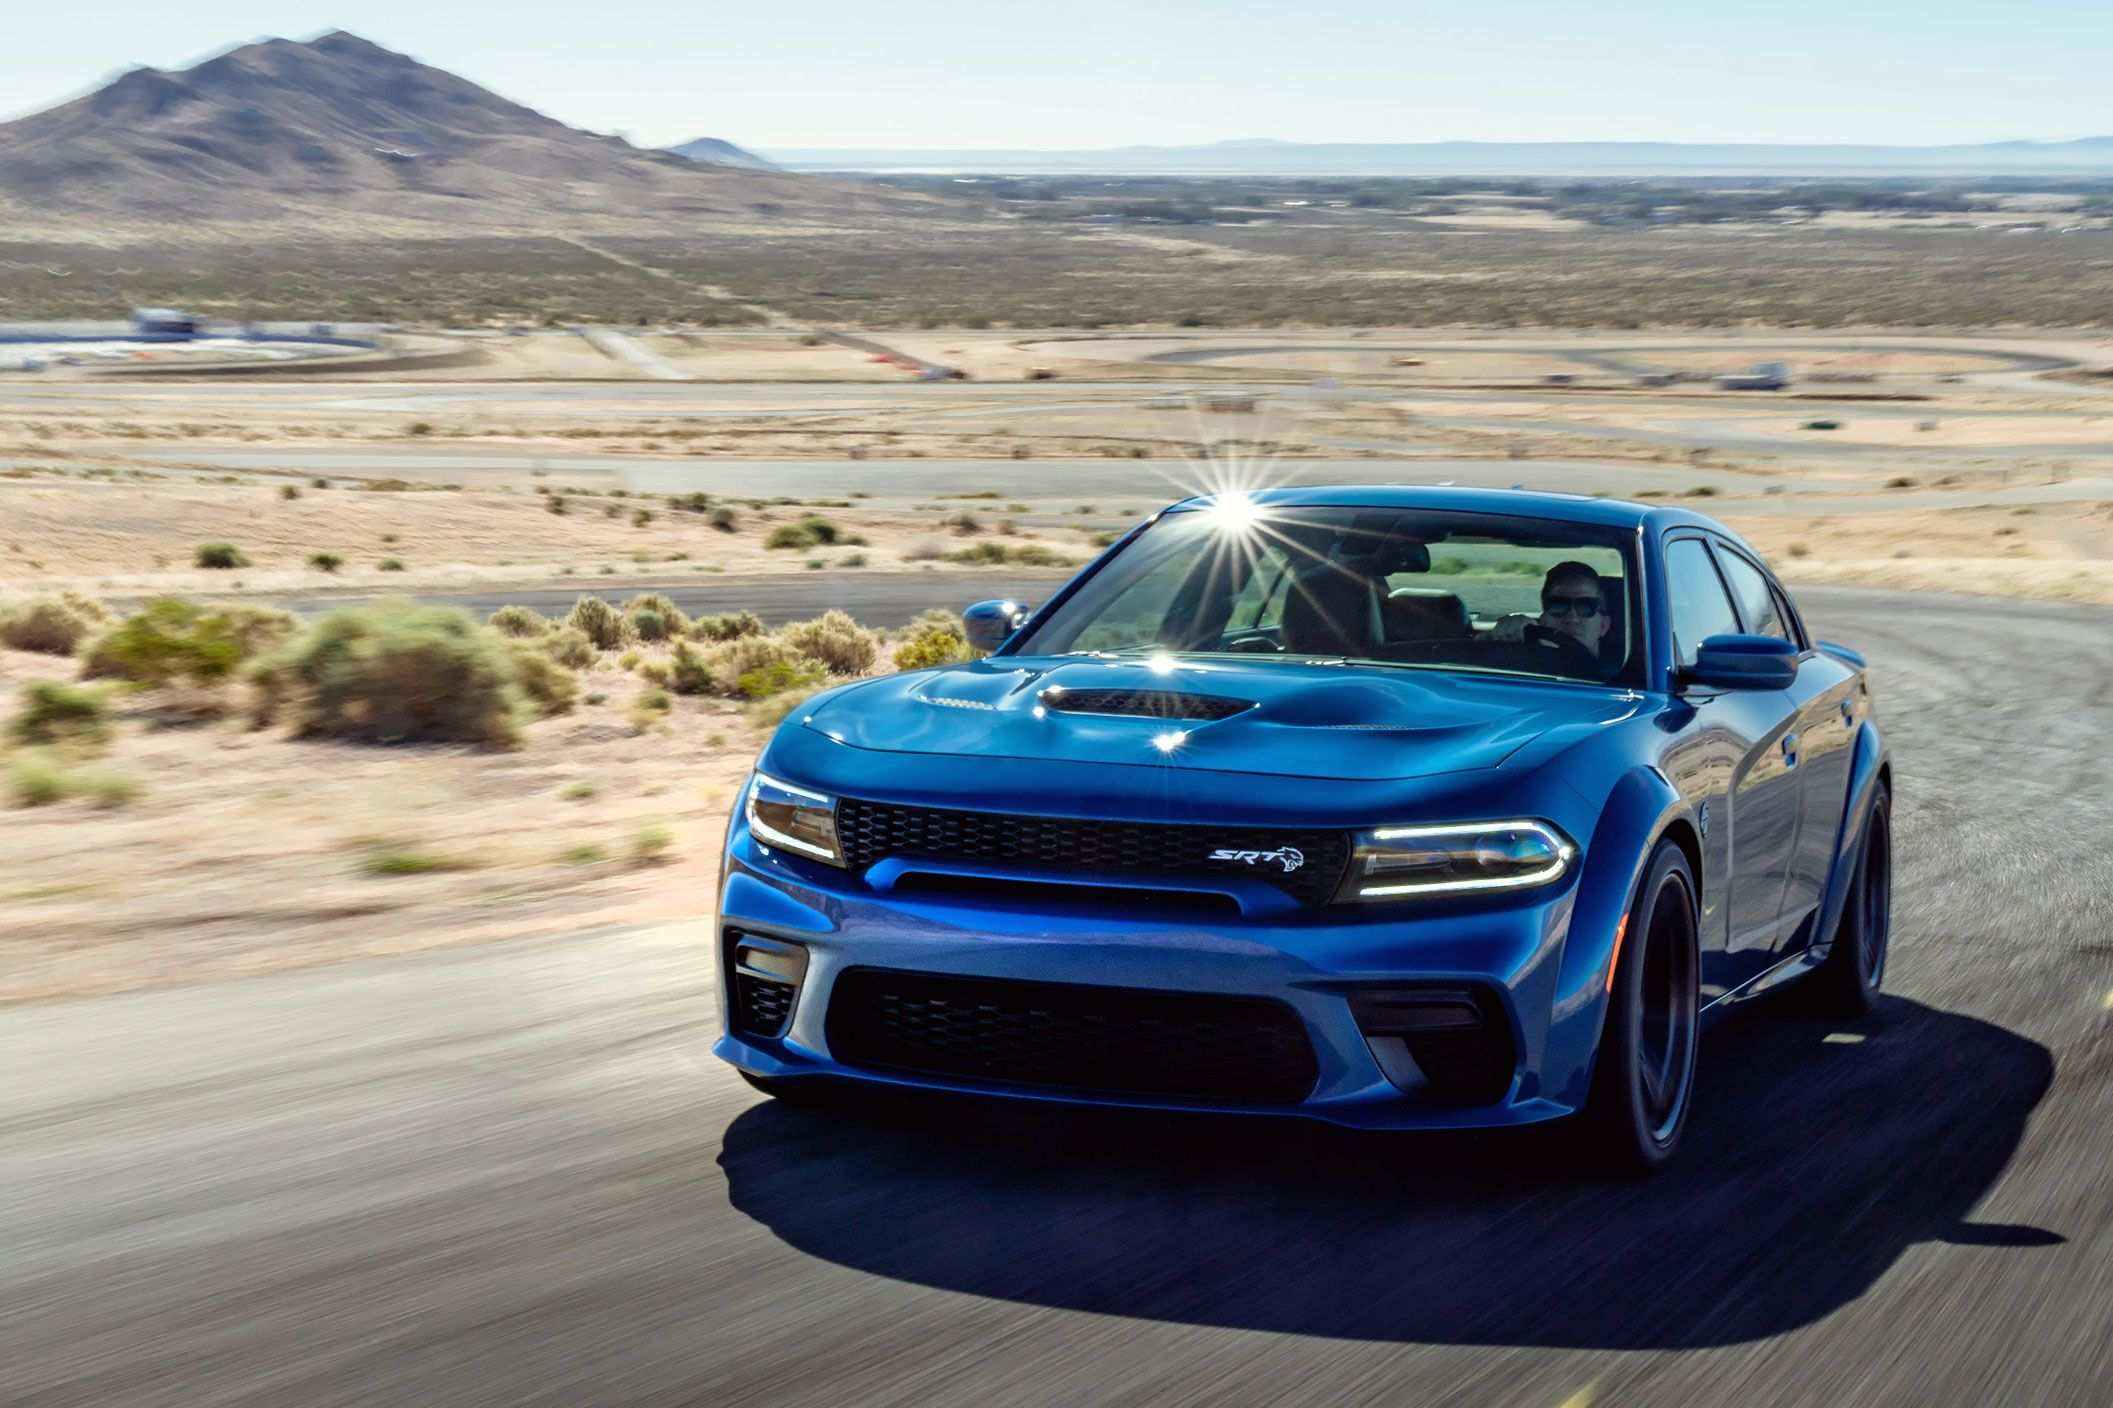 17 Best Review 2020 Dodge Charger Engine Overview for 2020 Dodge Charger Engine